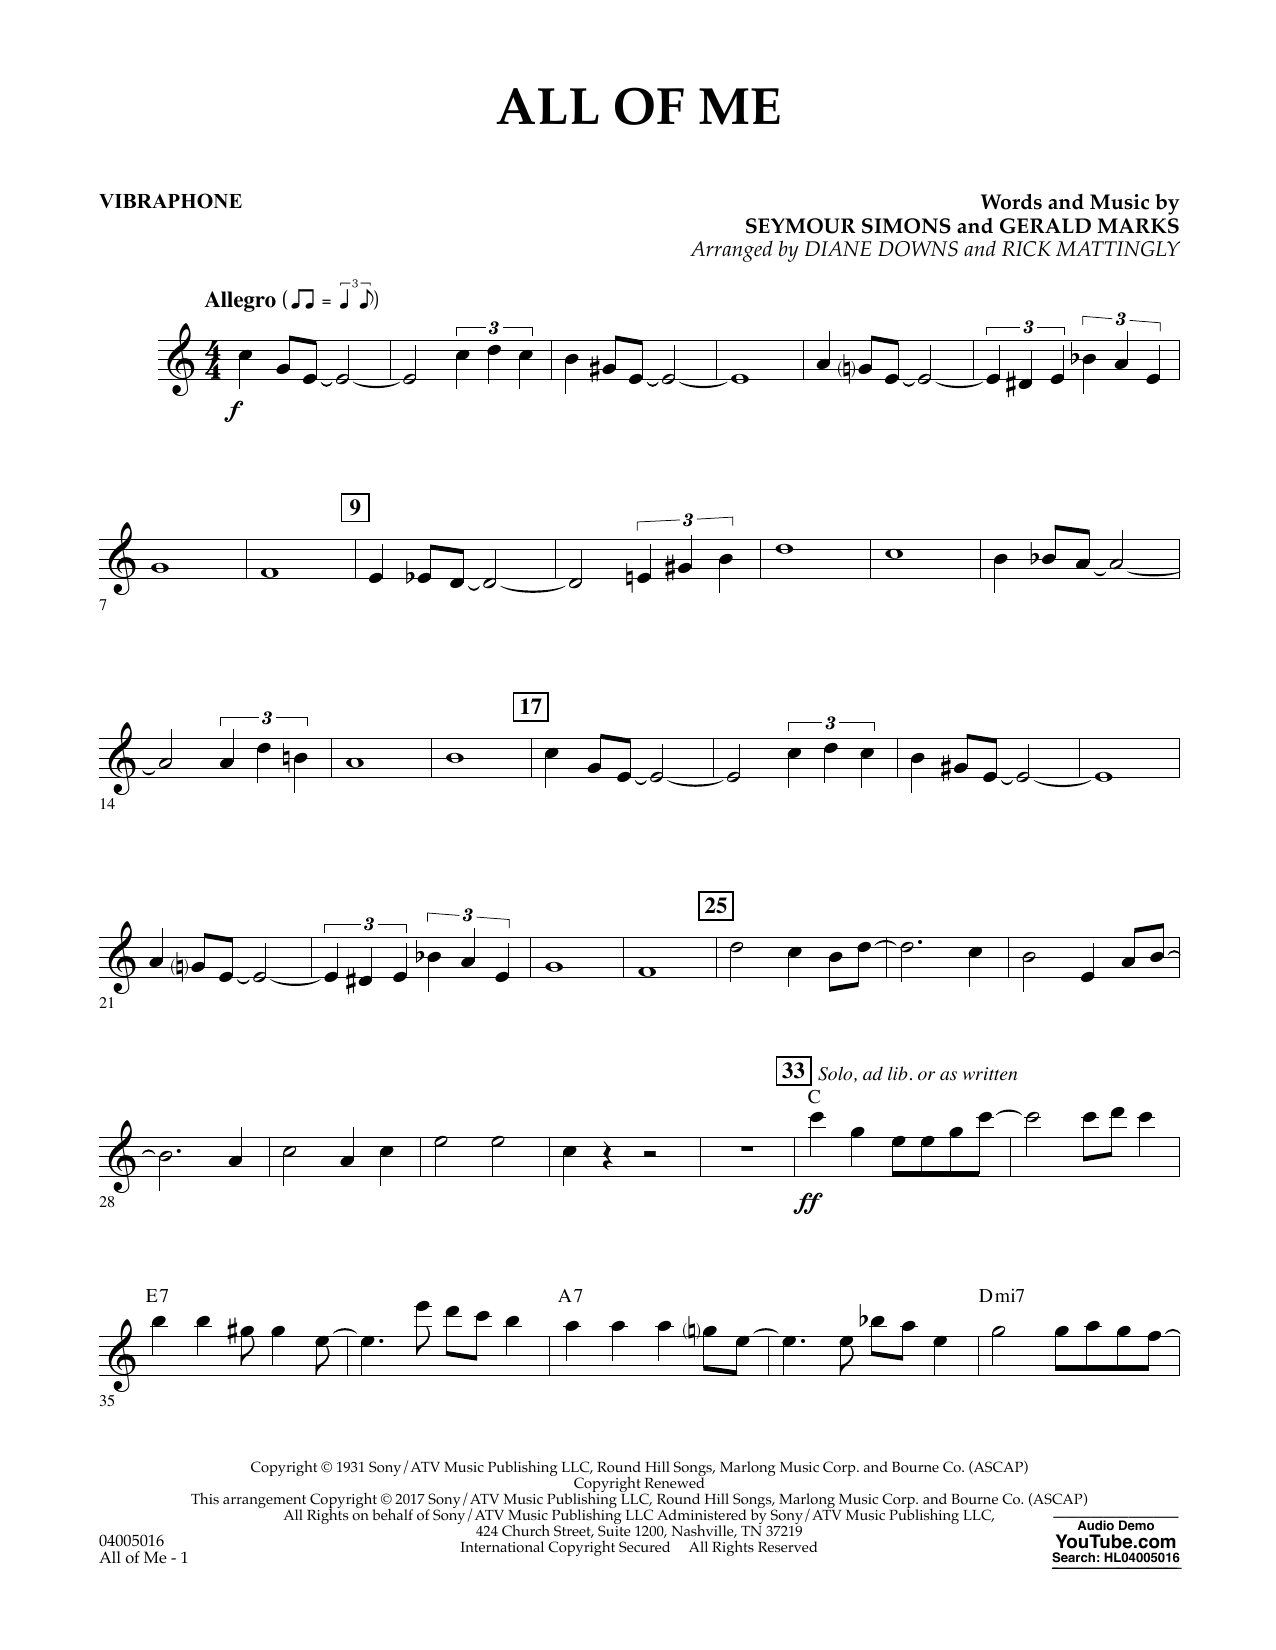 All of Me - Vibraphone Sheet Music